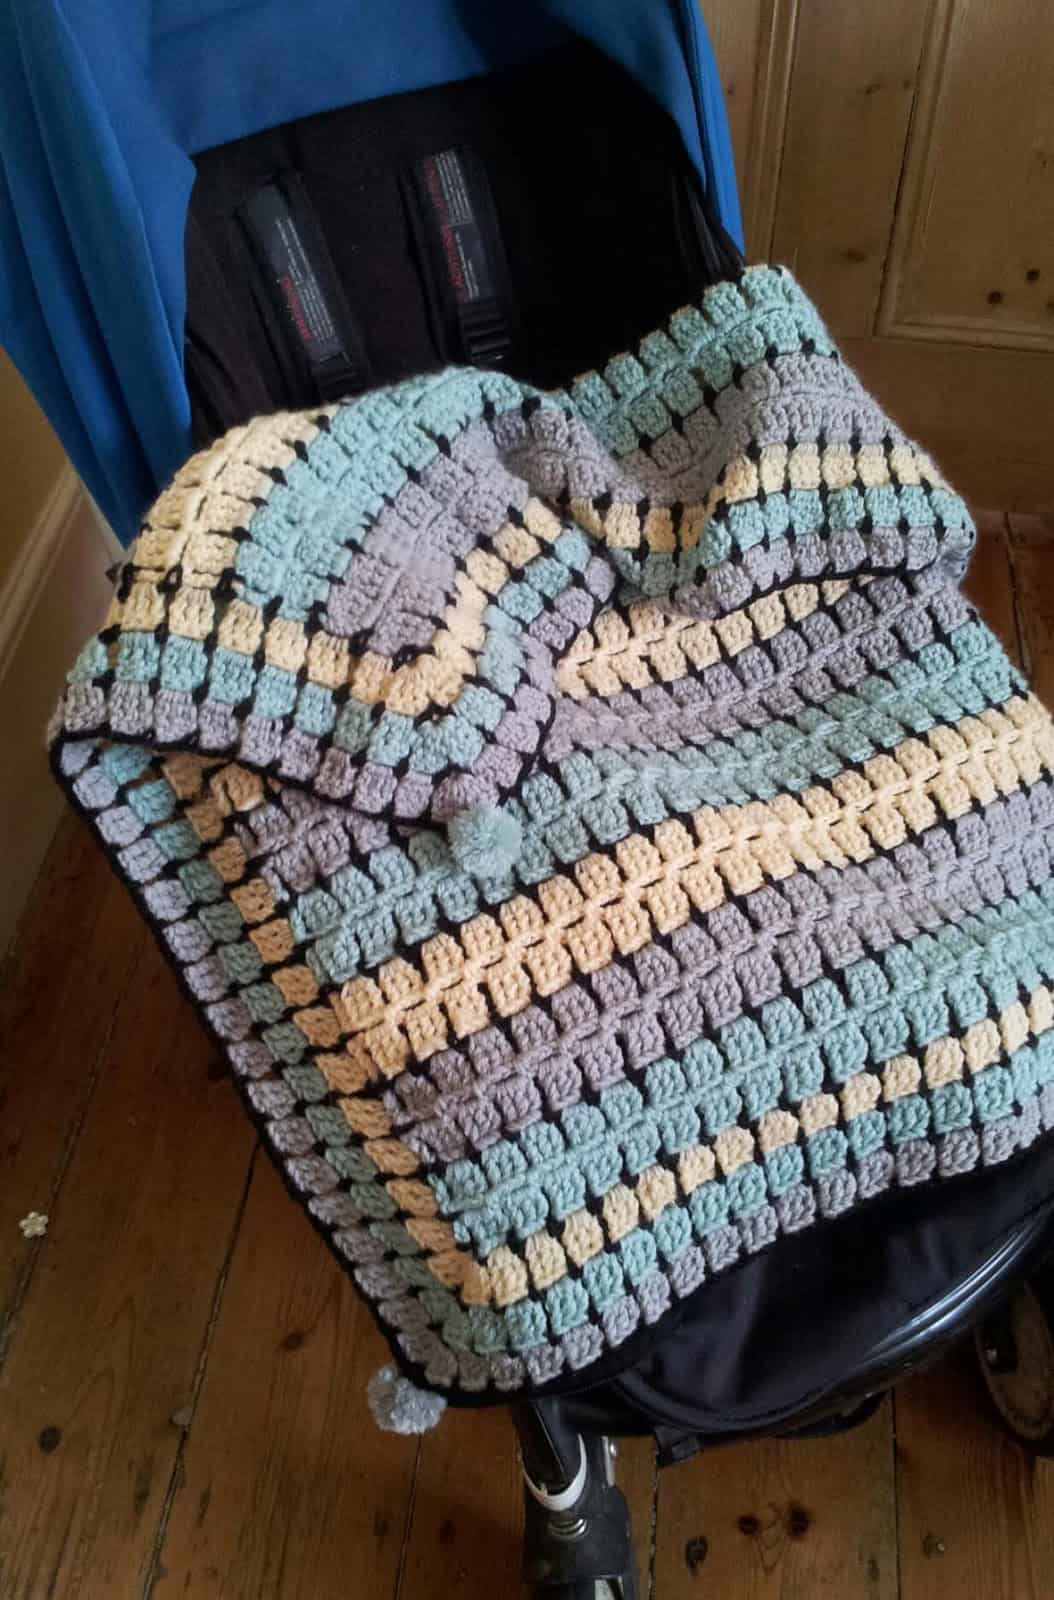 Retro crocheted baby buggy blanket